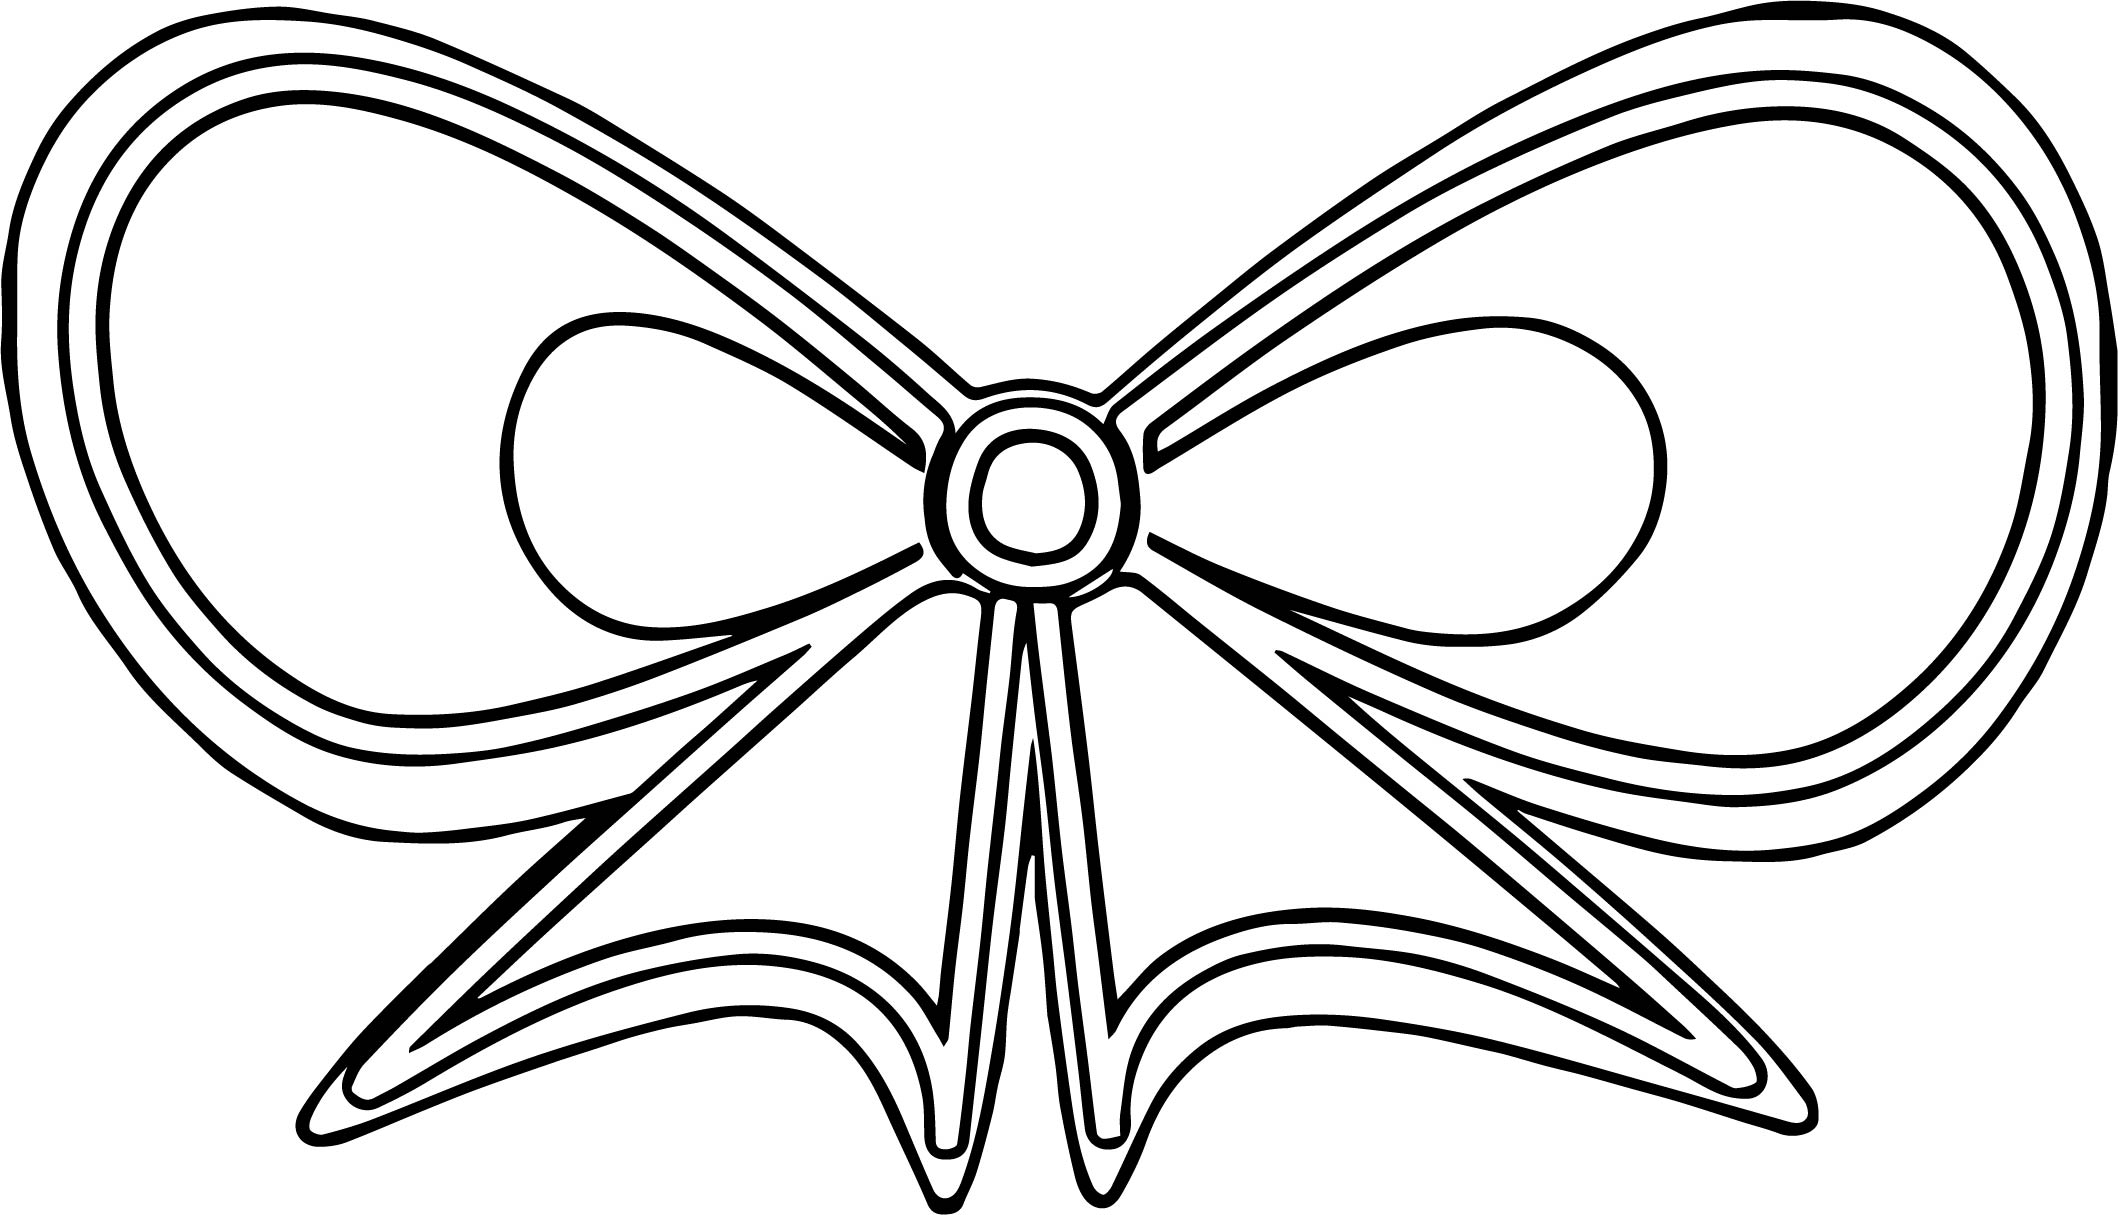 ribbon coloring pages - butterfly ribbon coloring page